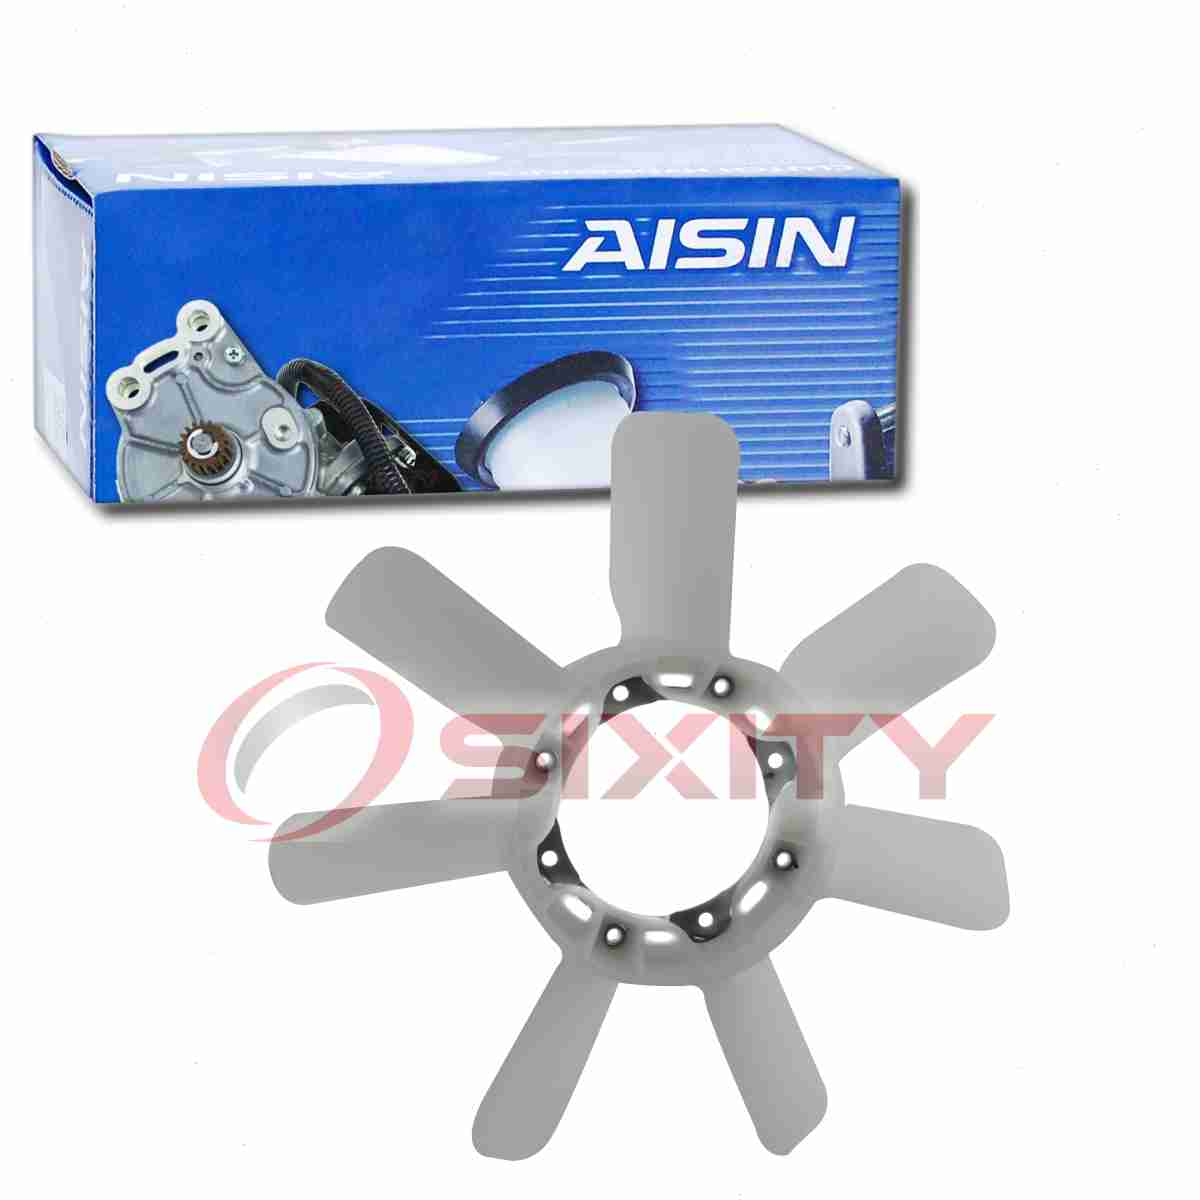 AISIN Cooling Fan Blade for 1998-2005 Lexus LX470 4.7L V8 Radiator Engine bj